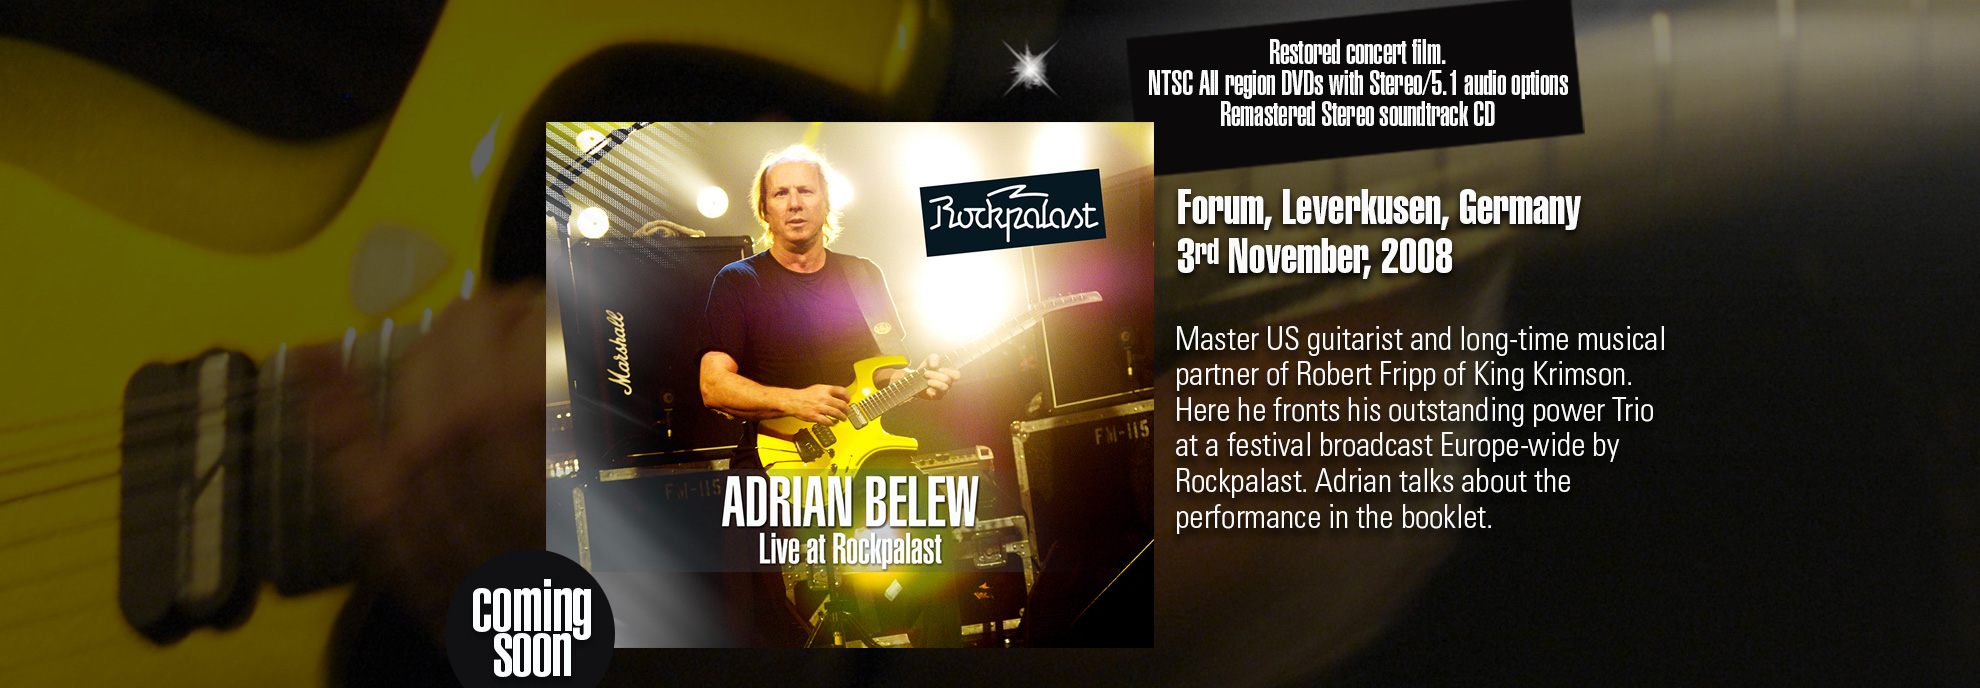 Adrian-Belew-new-banner-size